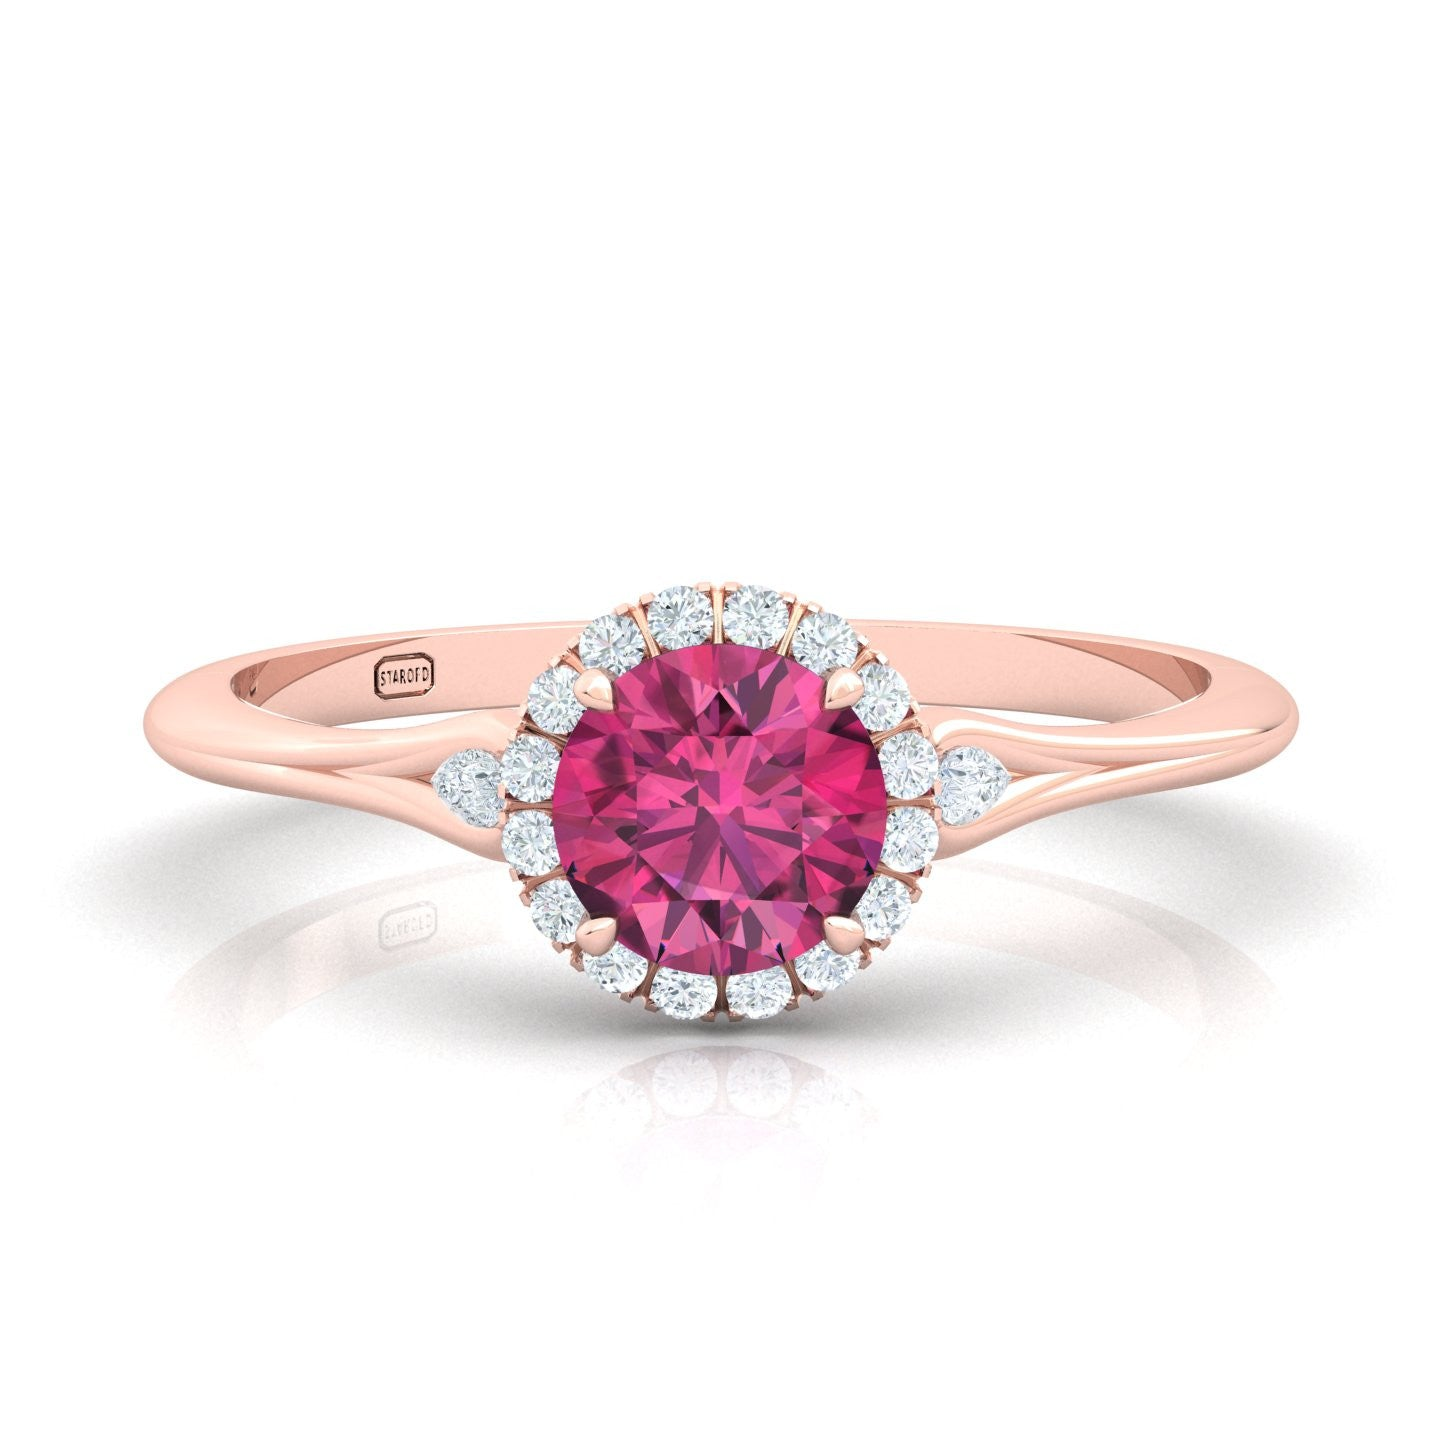 ring burma unheated ruby gold diamond cocktail jewelry natural id for engagement j contemporary l image sale at rings